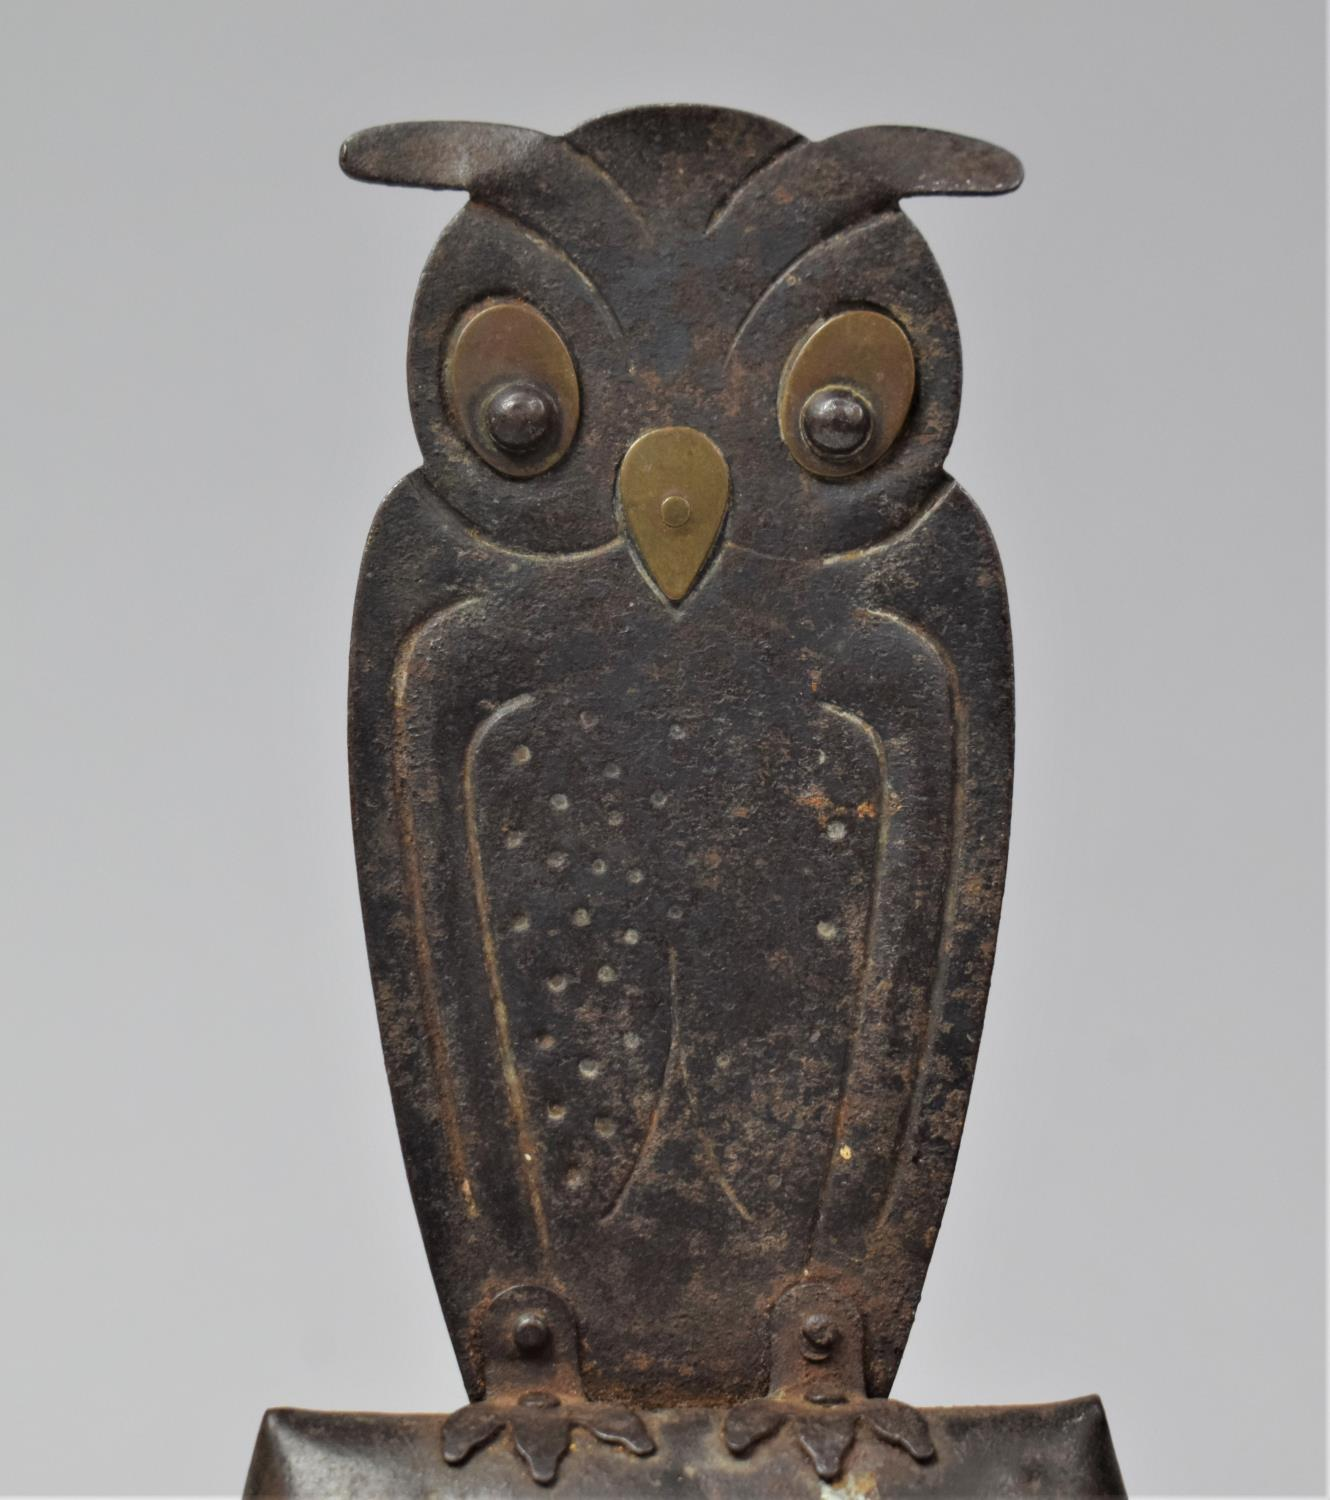 A German Arts and Crafts Handbell, the Handle in the Form of a Long Eared Owl, In Mixed Metal, - Image 2 of 6